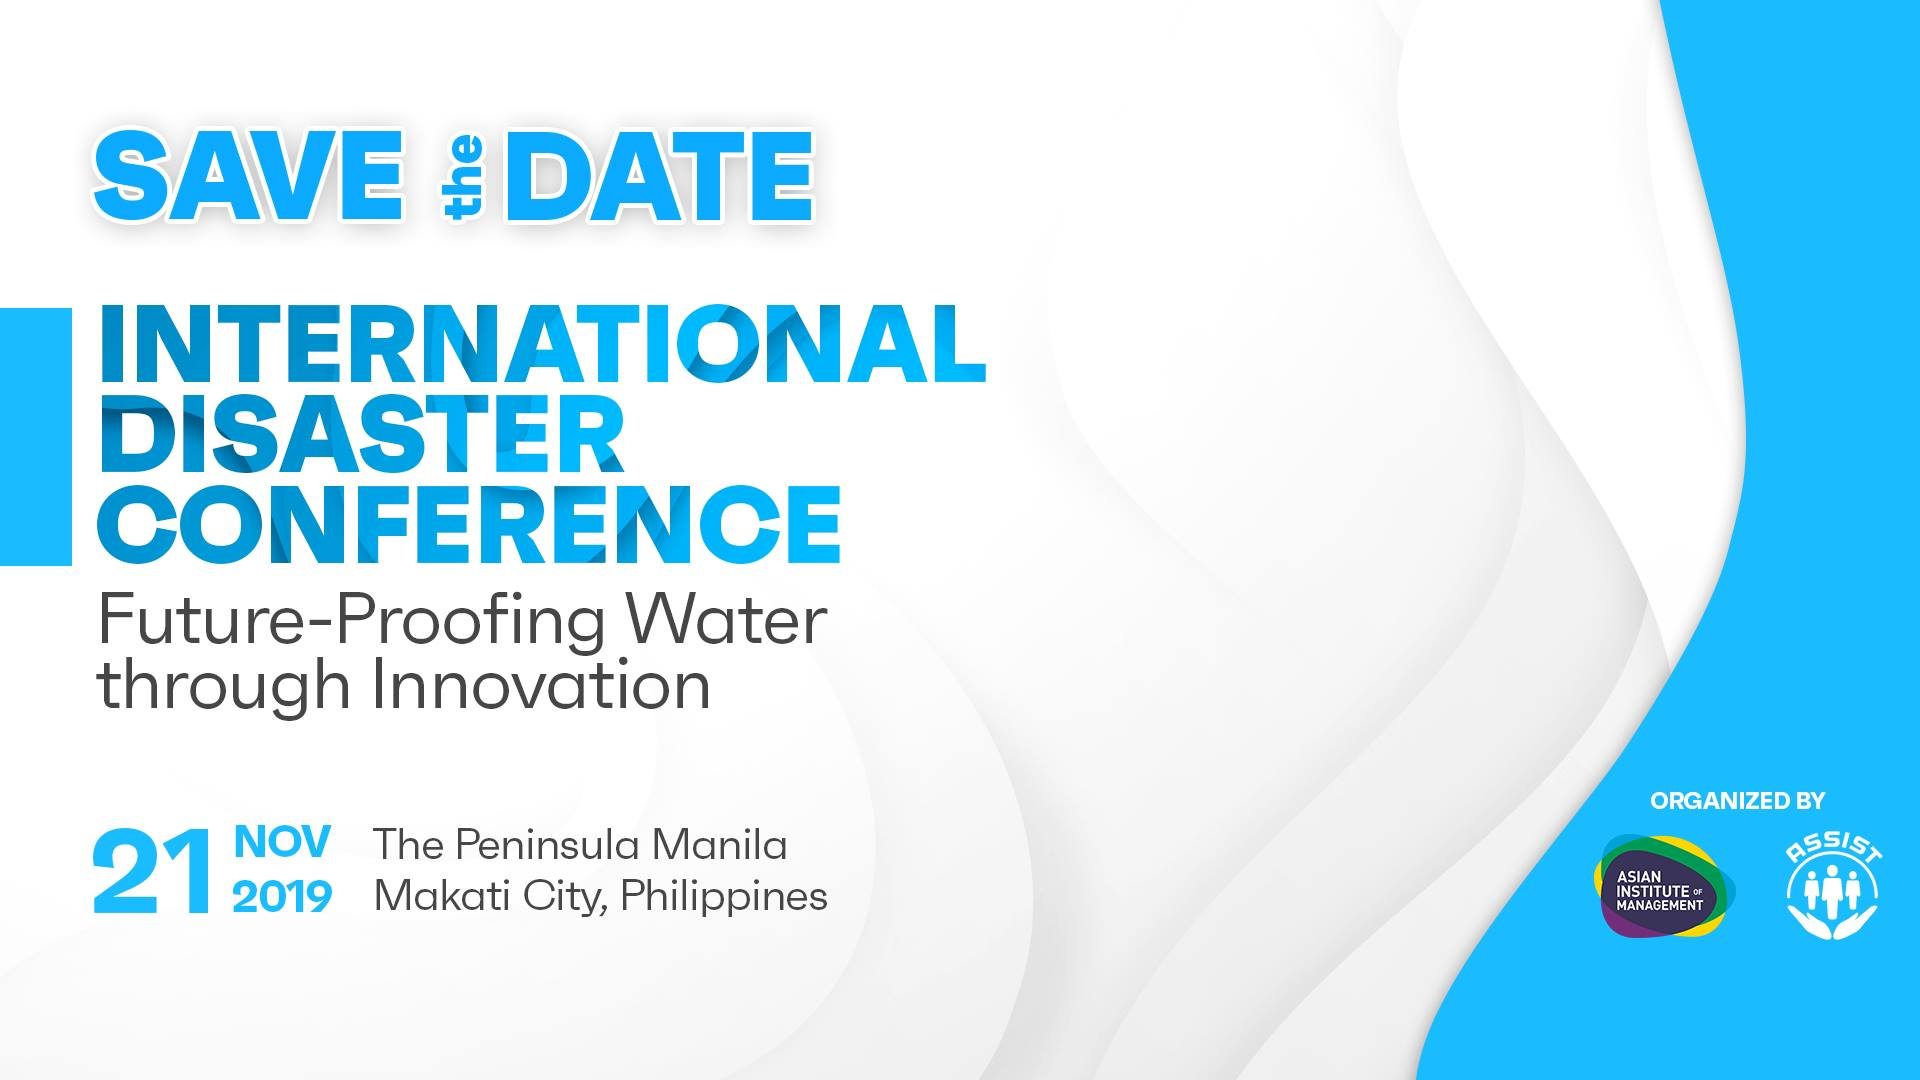 International Disaster Conference (IDC)